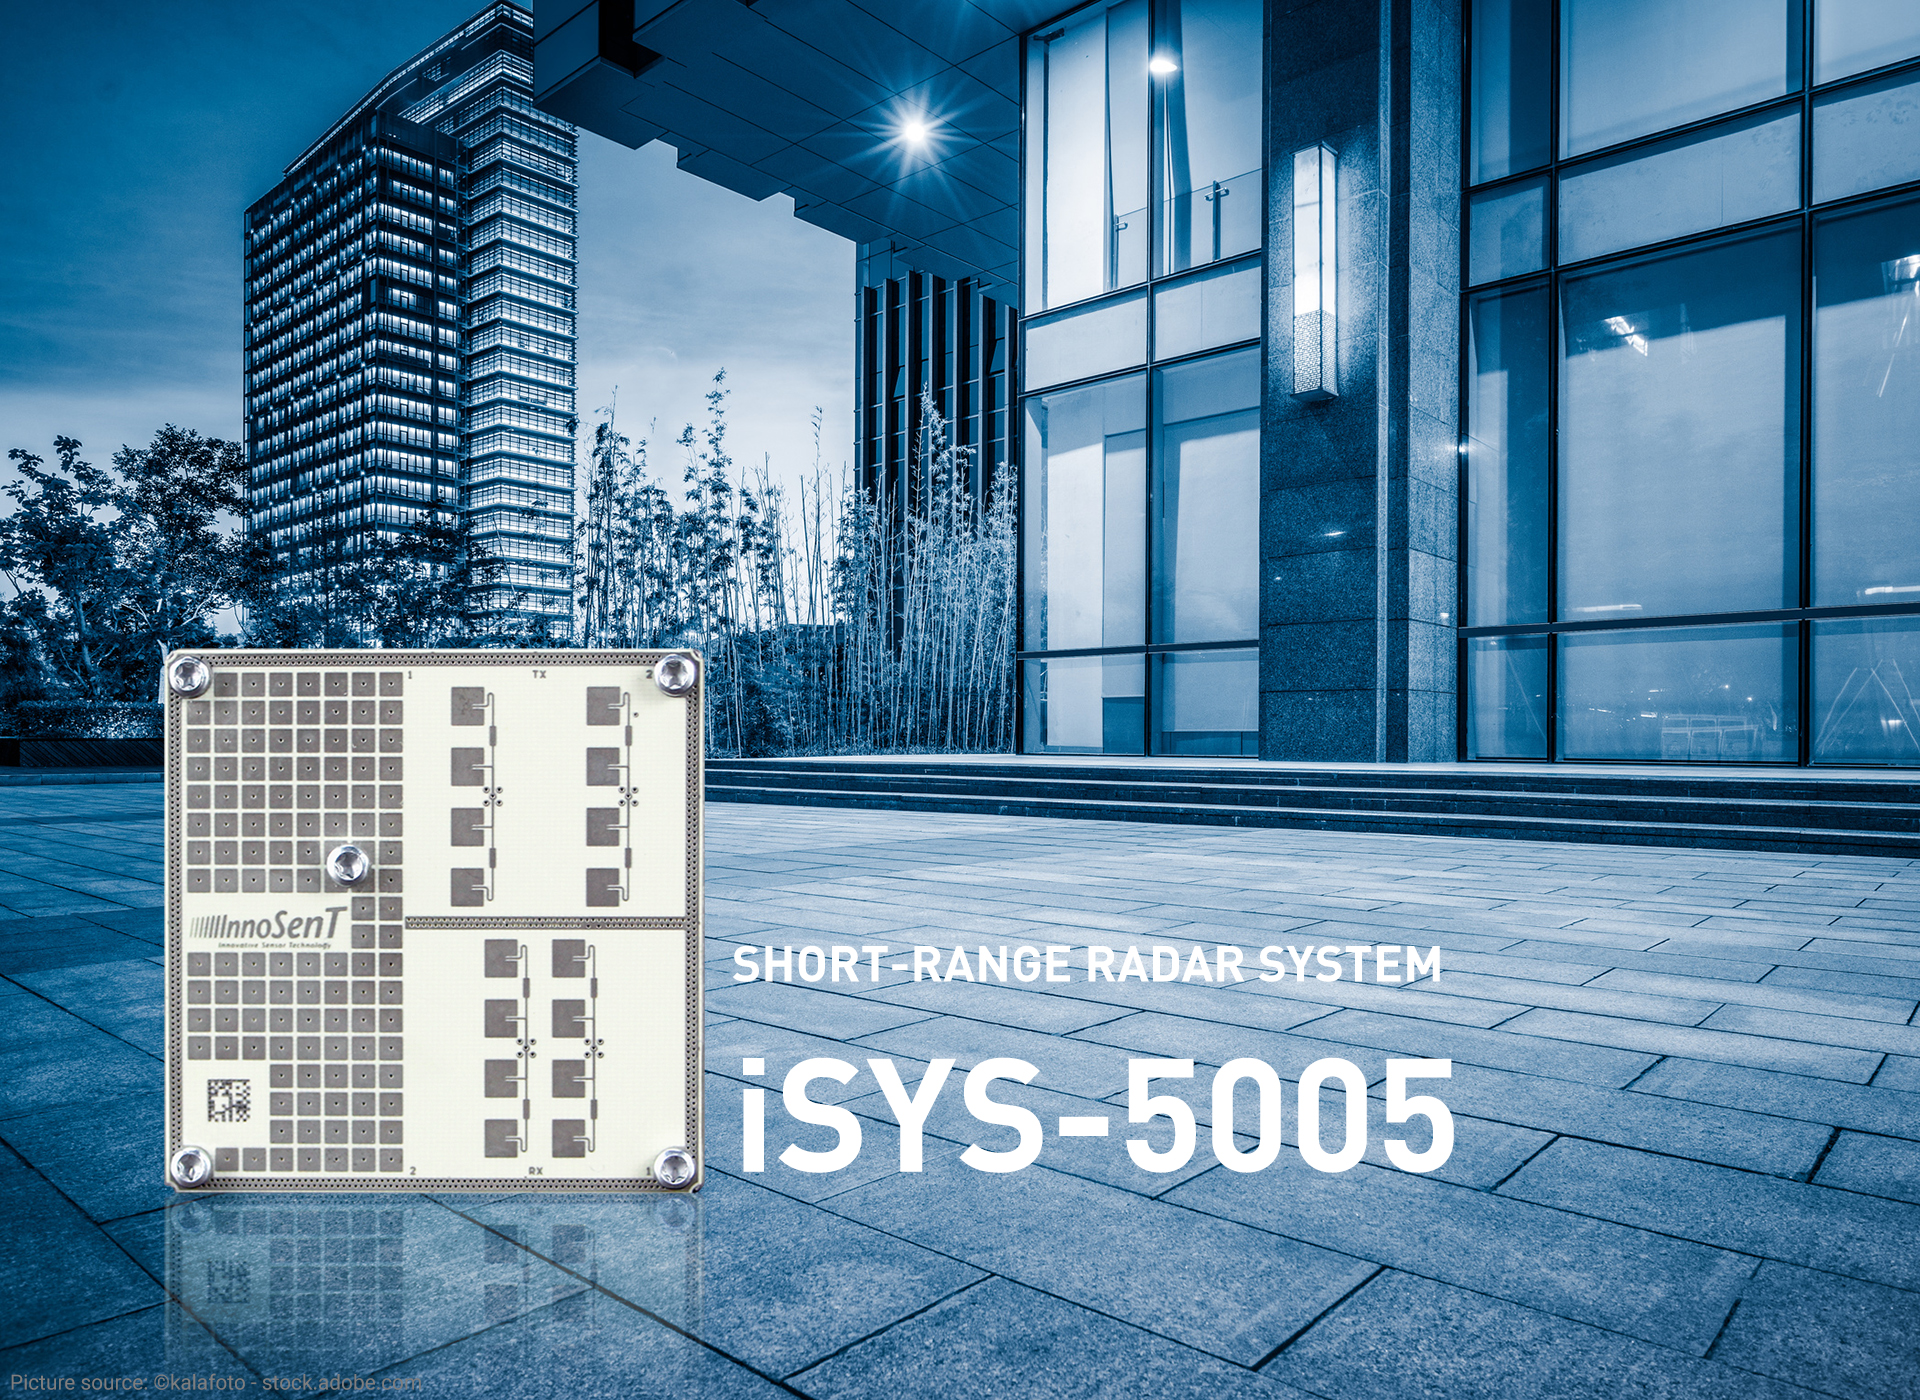 Three questions about the new iSYS-5005 short-range radar